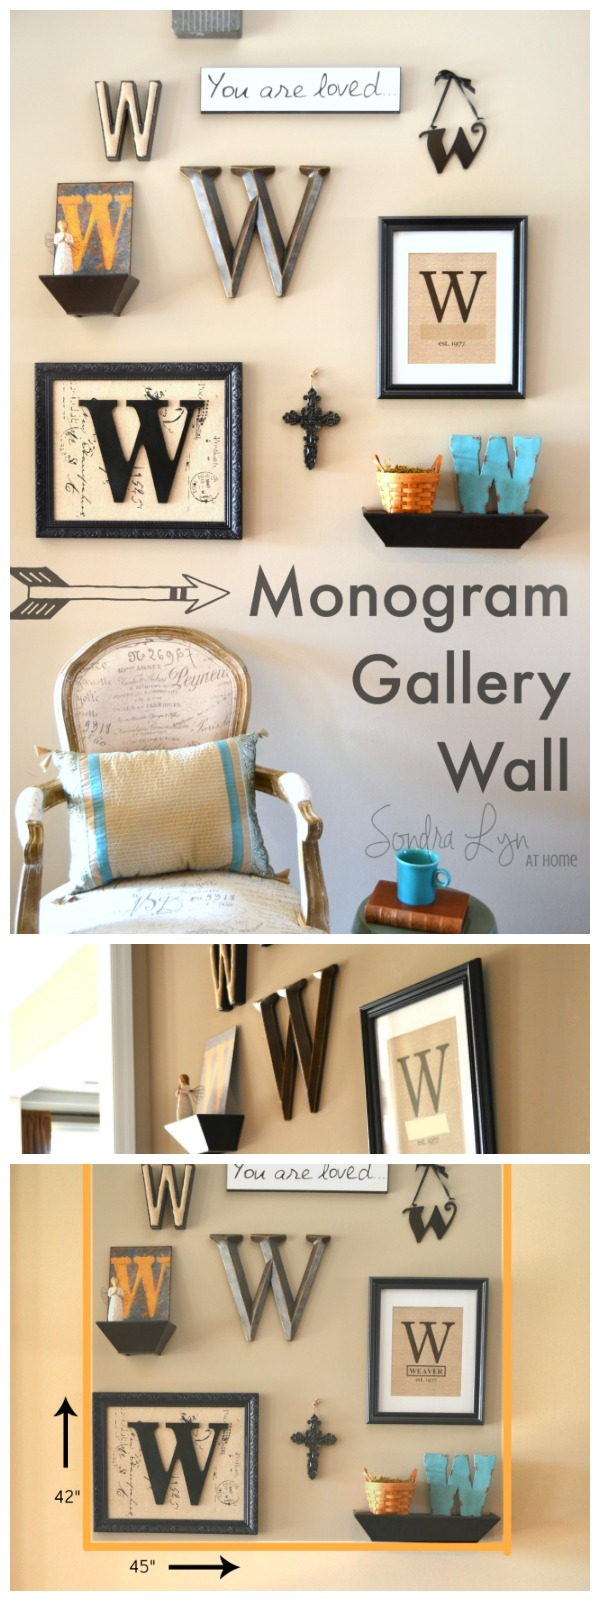 How to construct a Monogram Gallery Wall - Sondra Lyn at Home